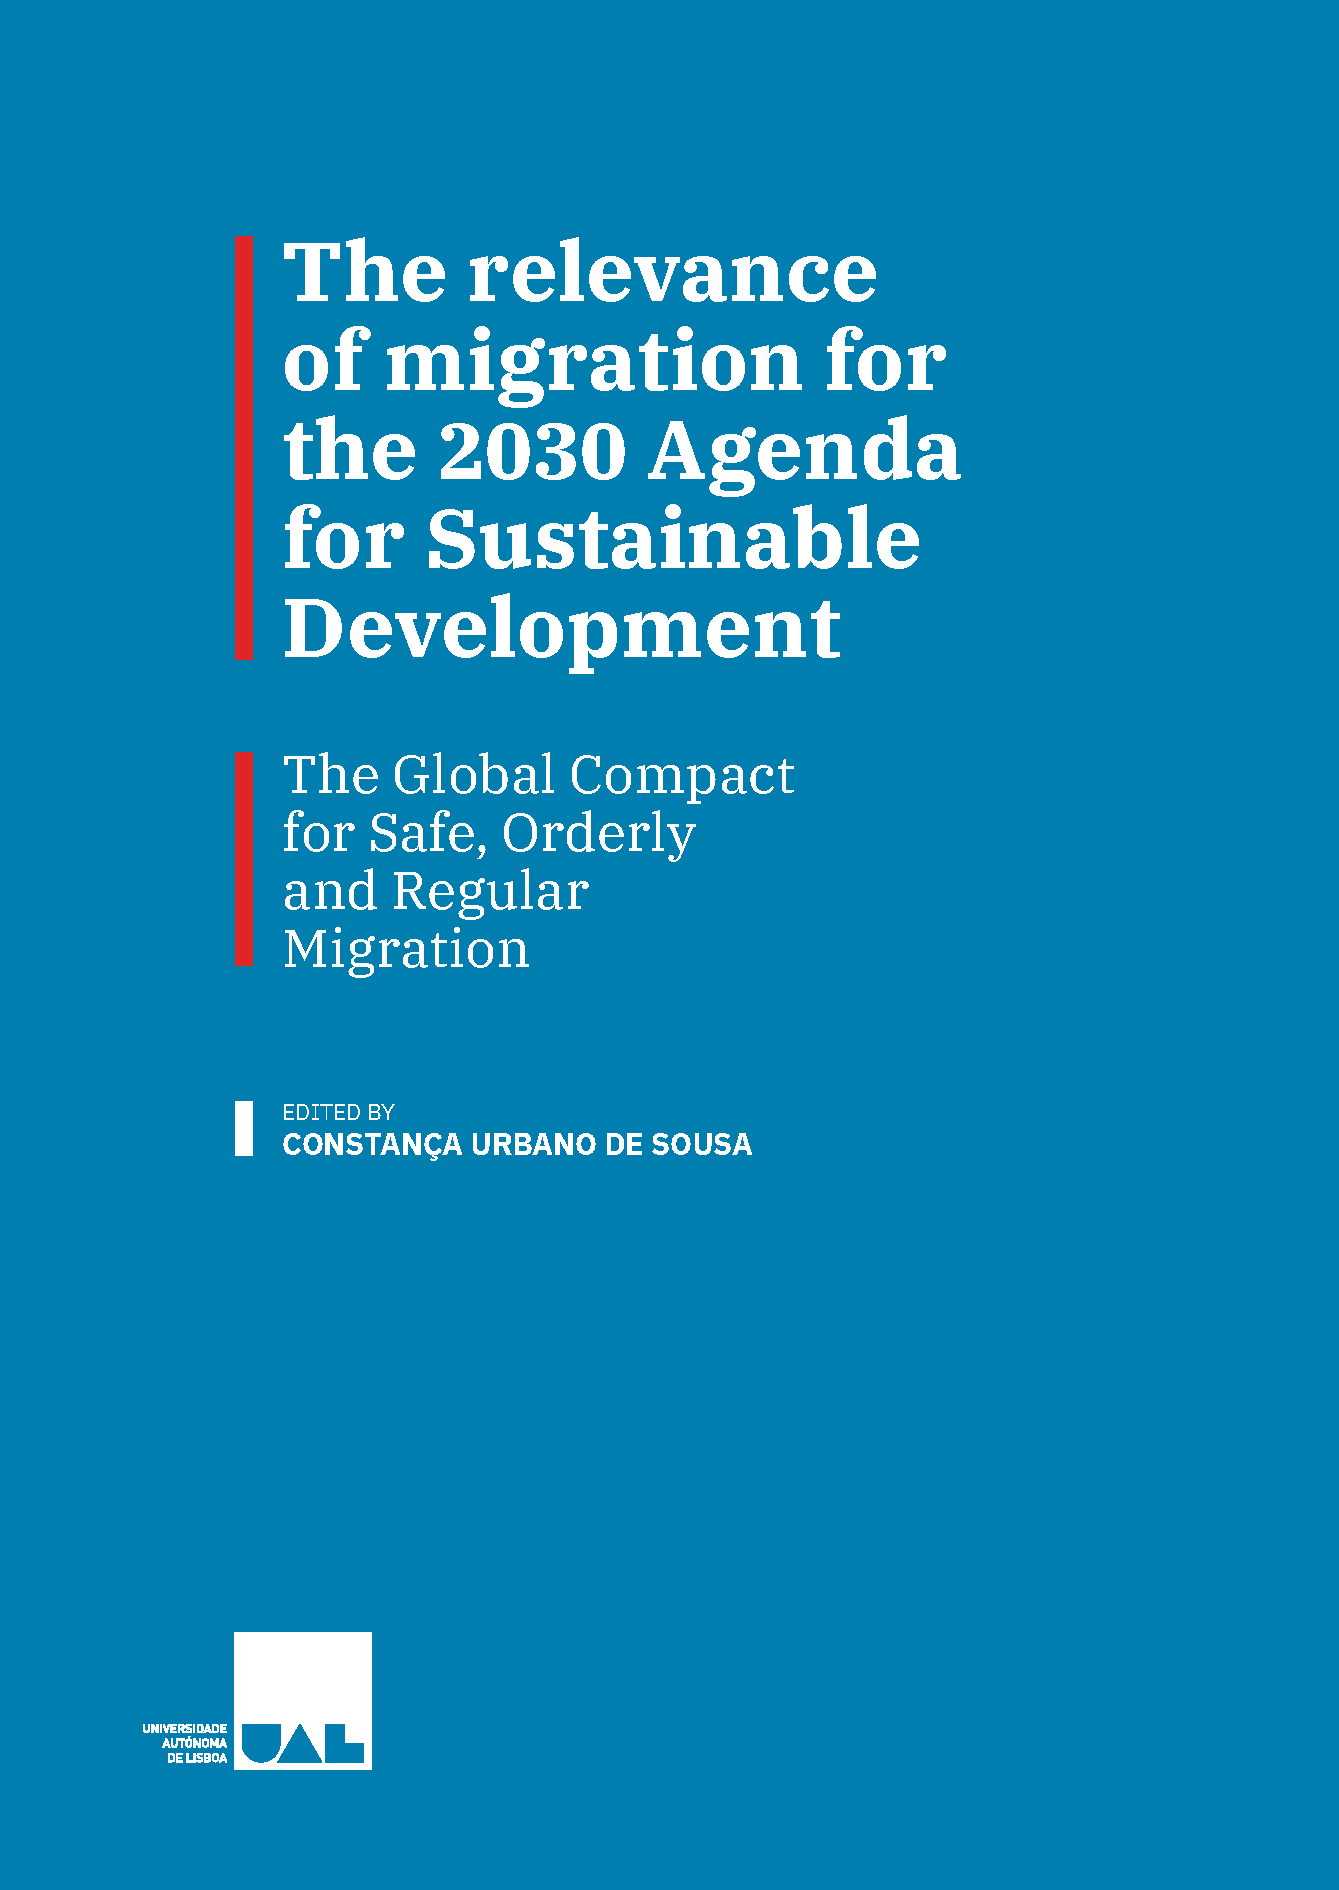 The relevance of migration for the 2030 Agenda for Sustainable Development.